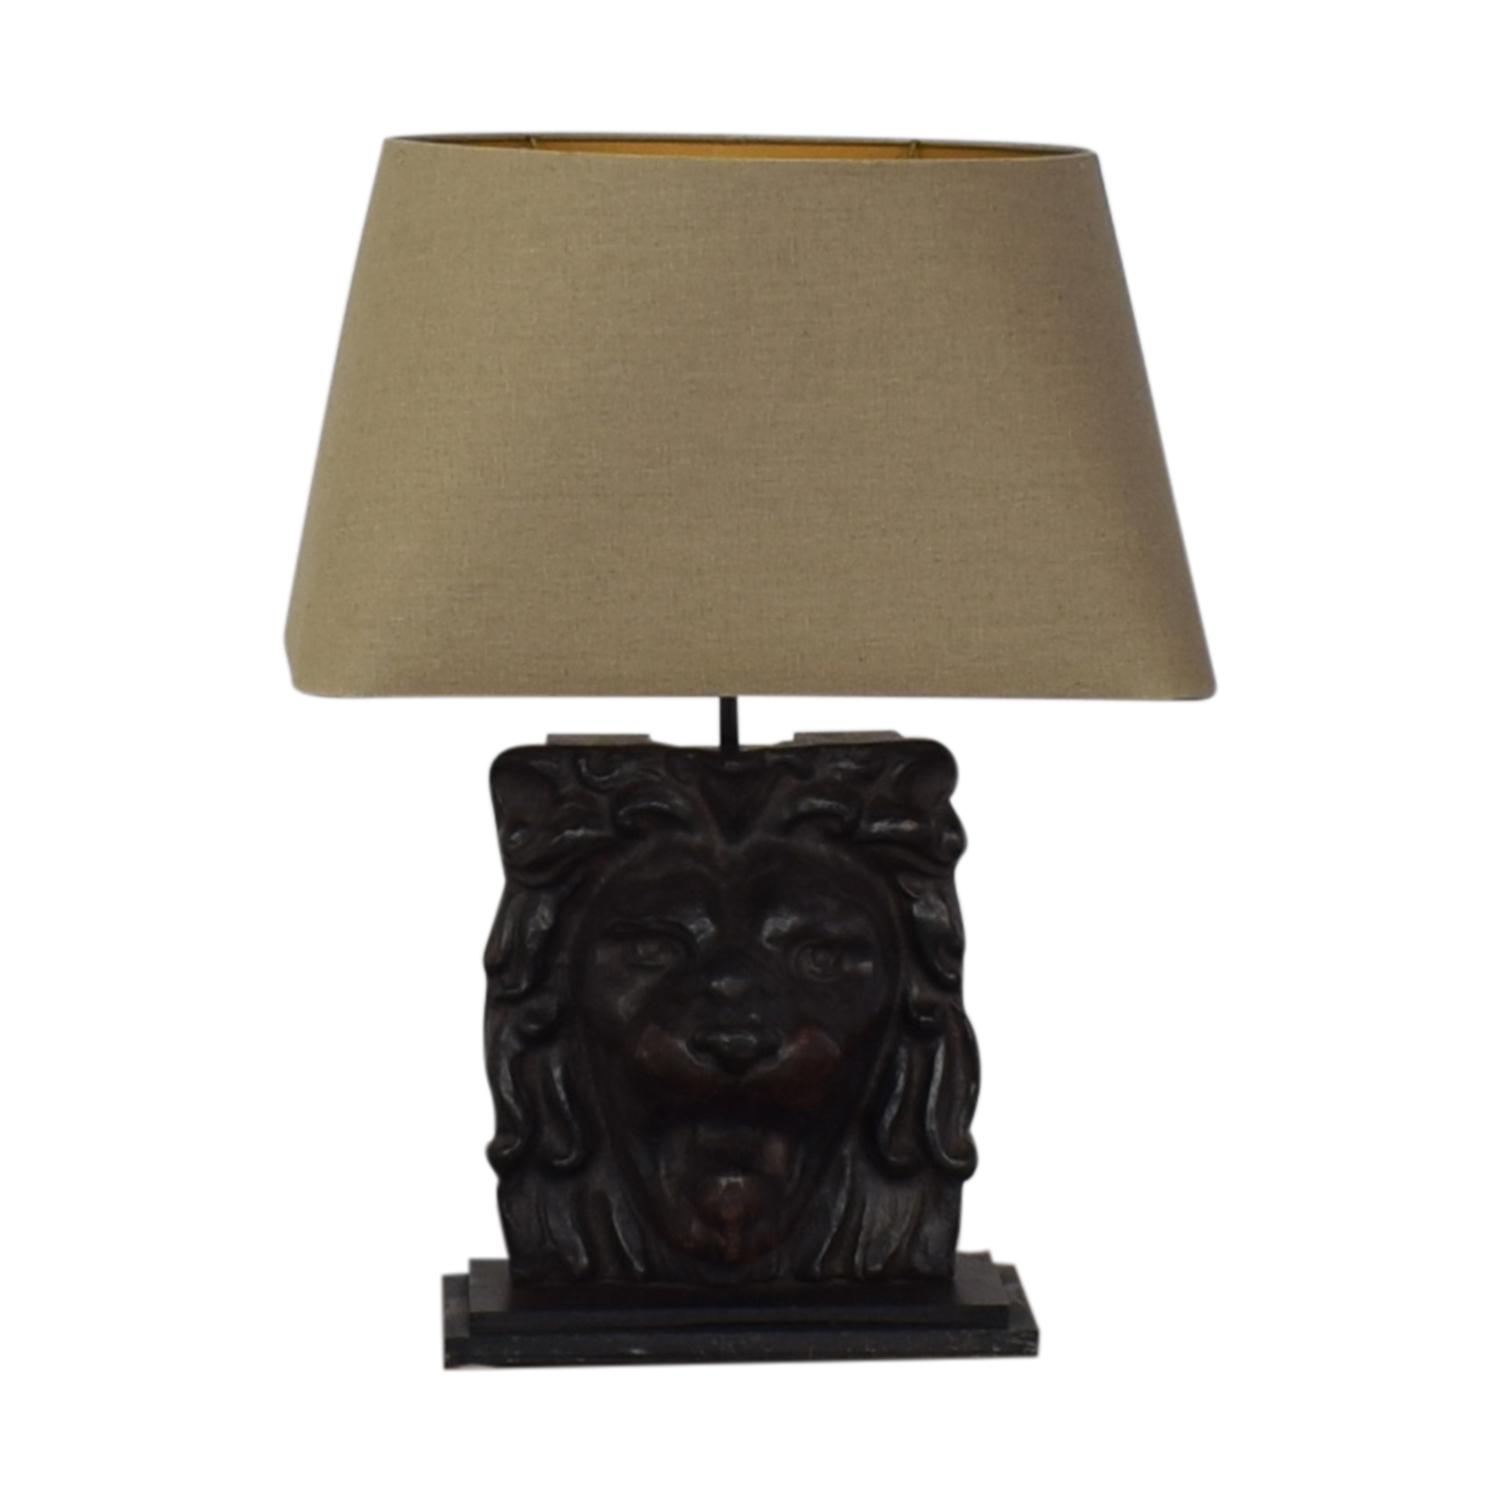 Restoration Hardware Restoration Hardware Lion's Head Table Lamp price